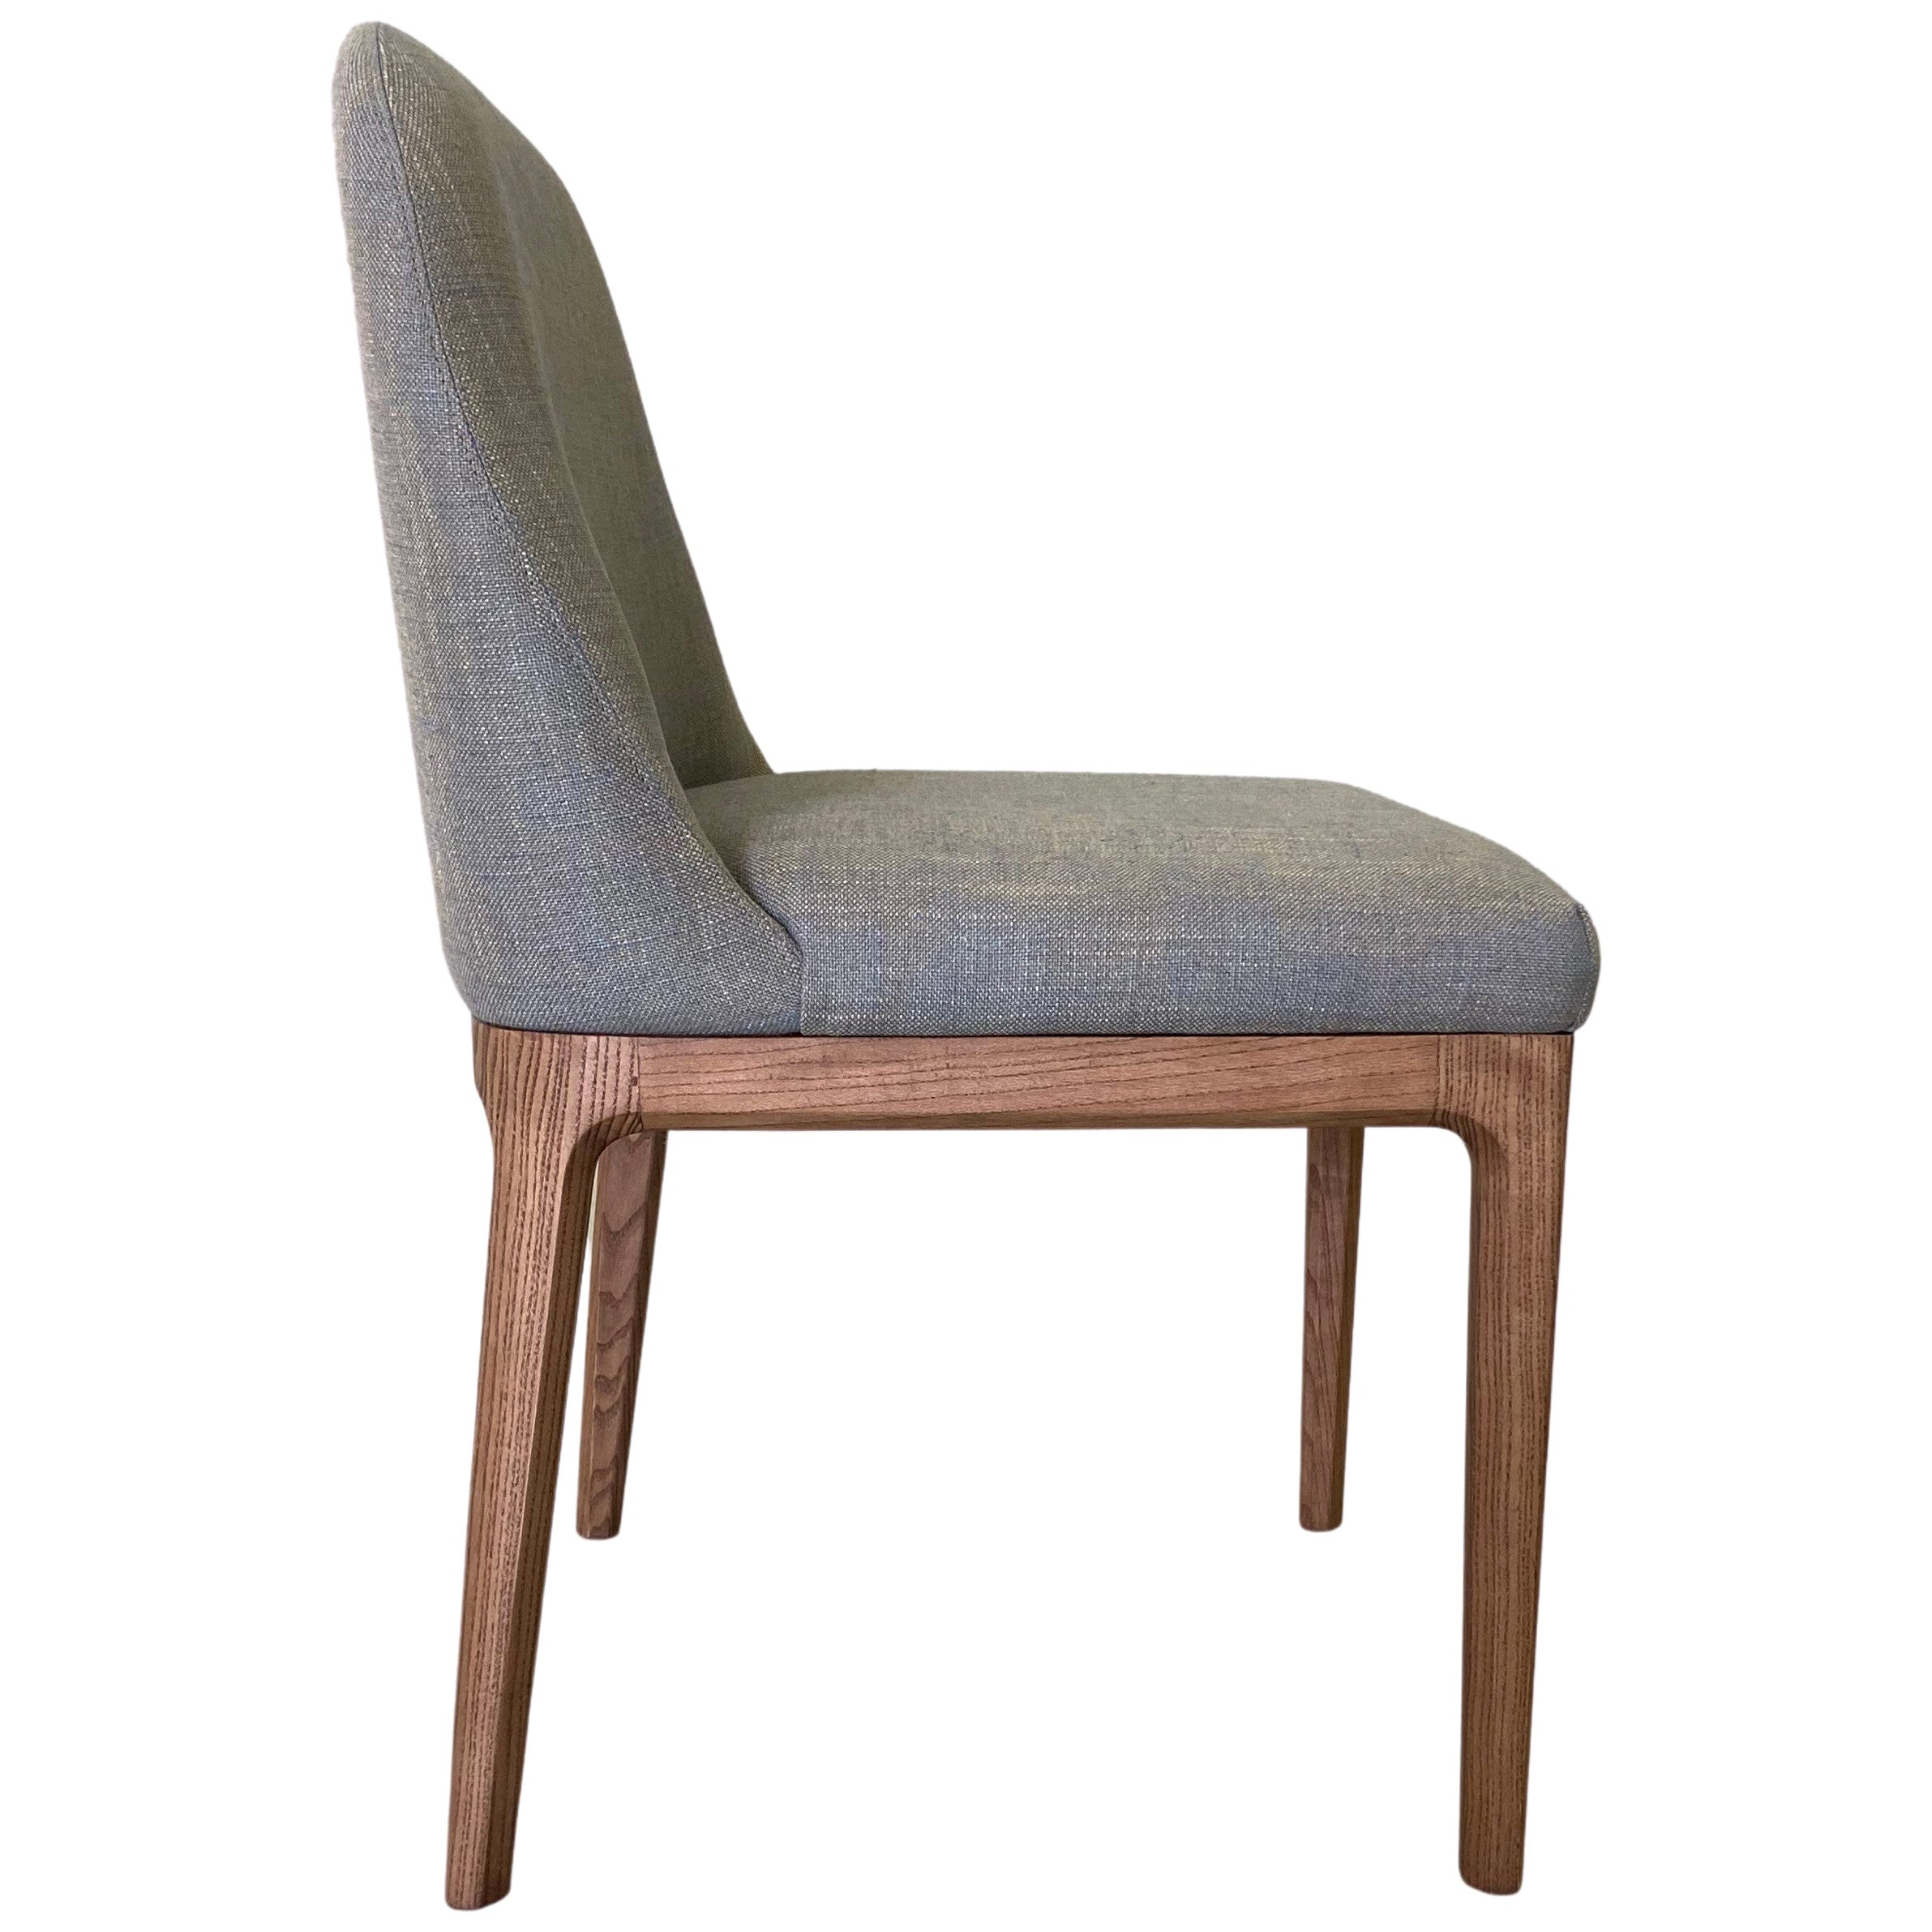 Morelato Contemporary Dining Chair in Ashwood